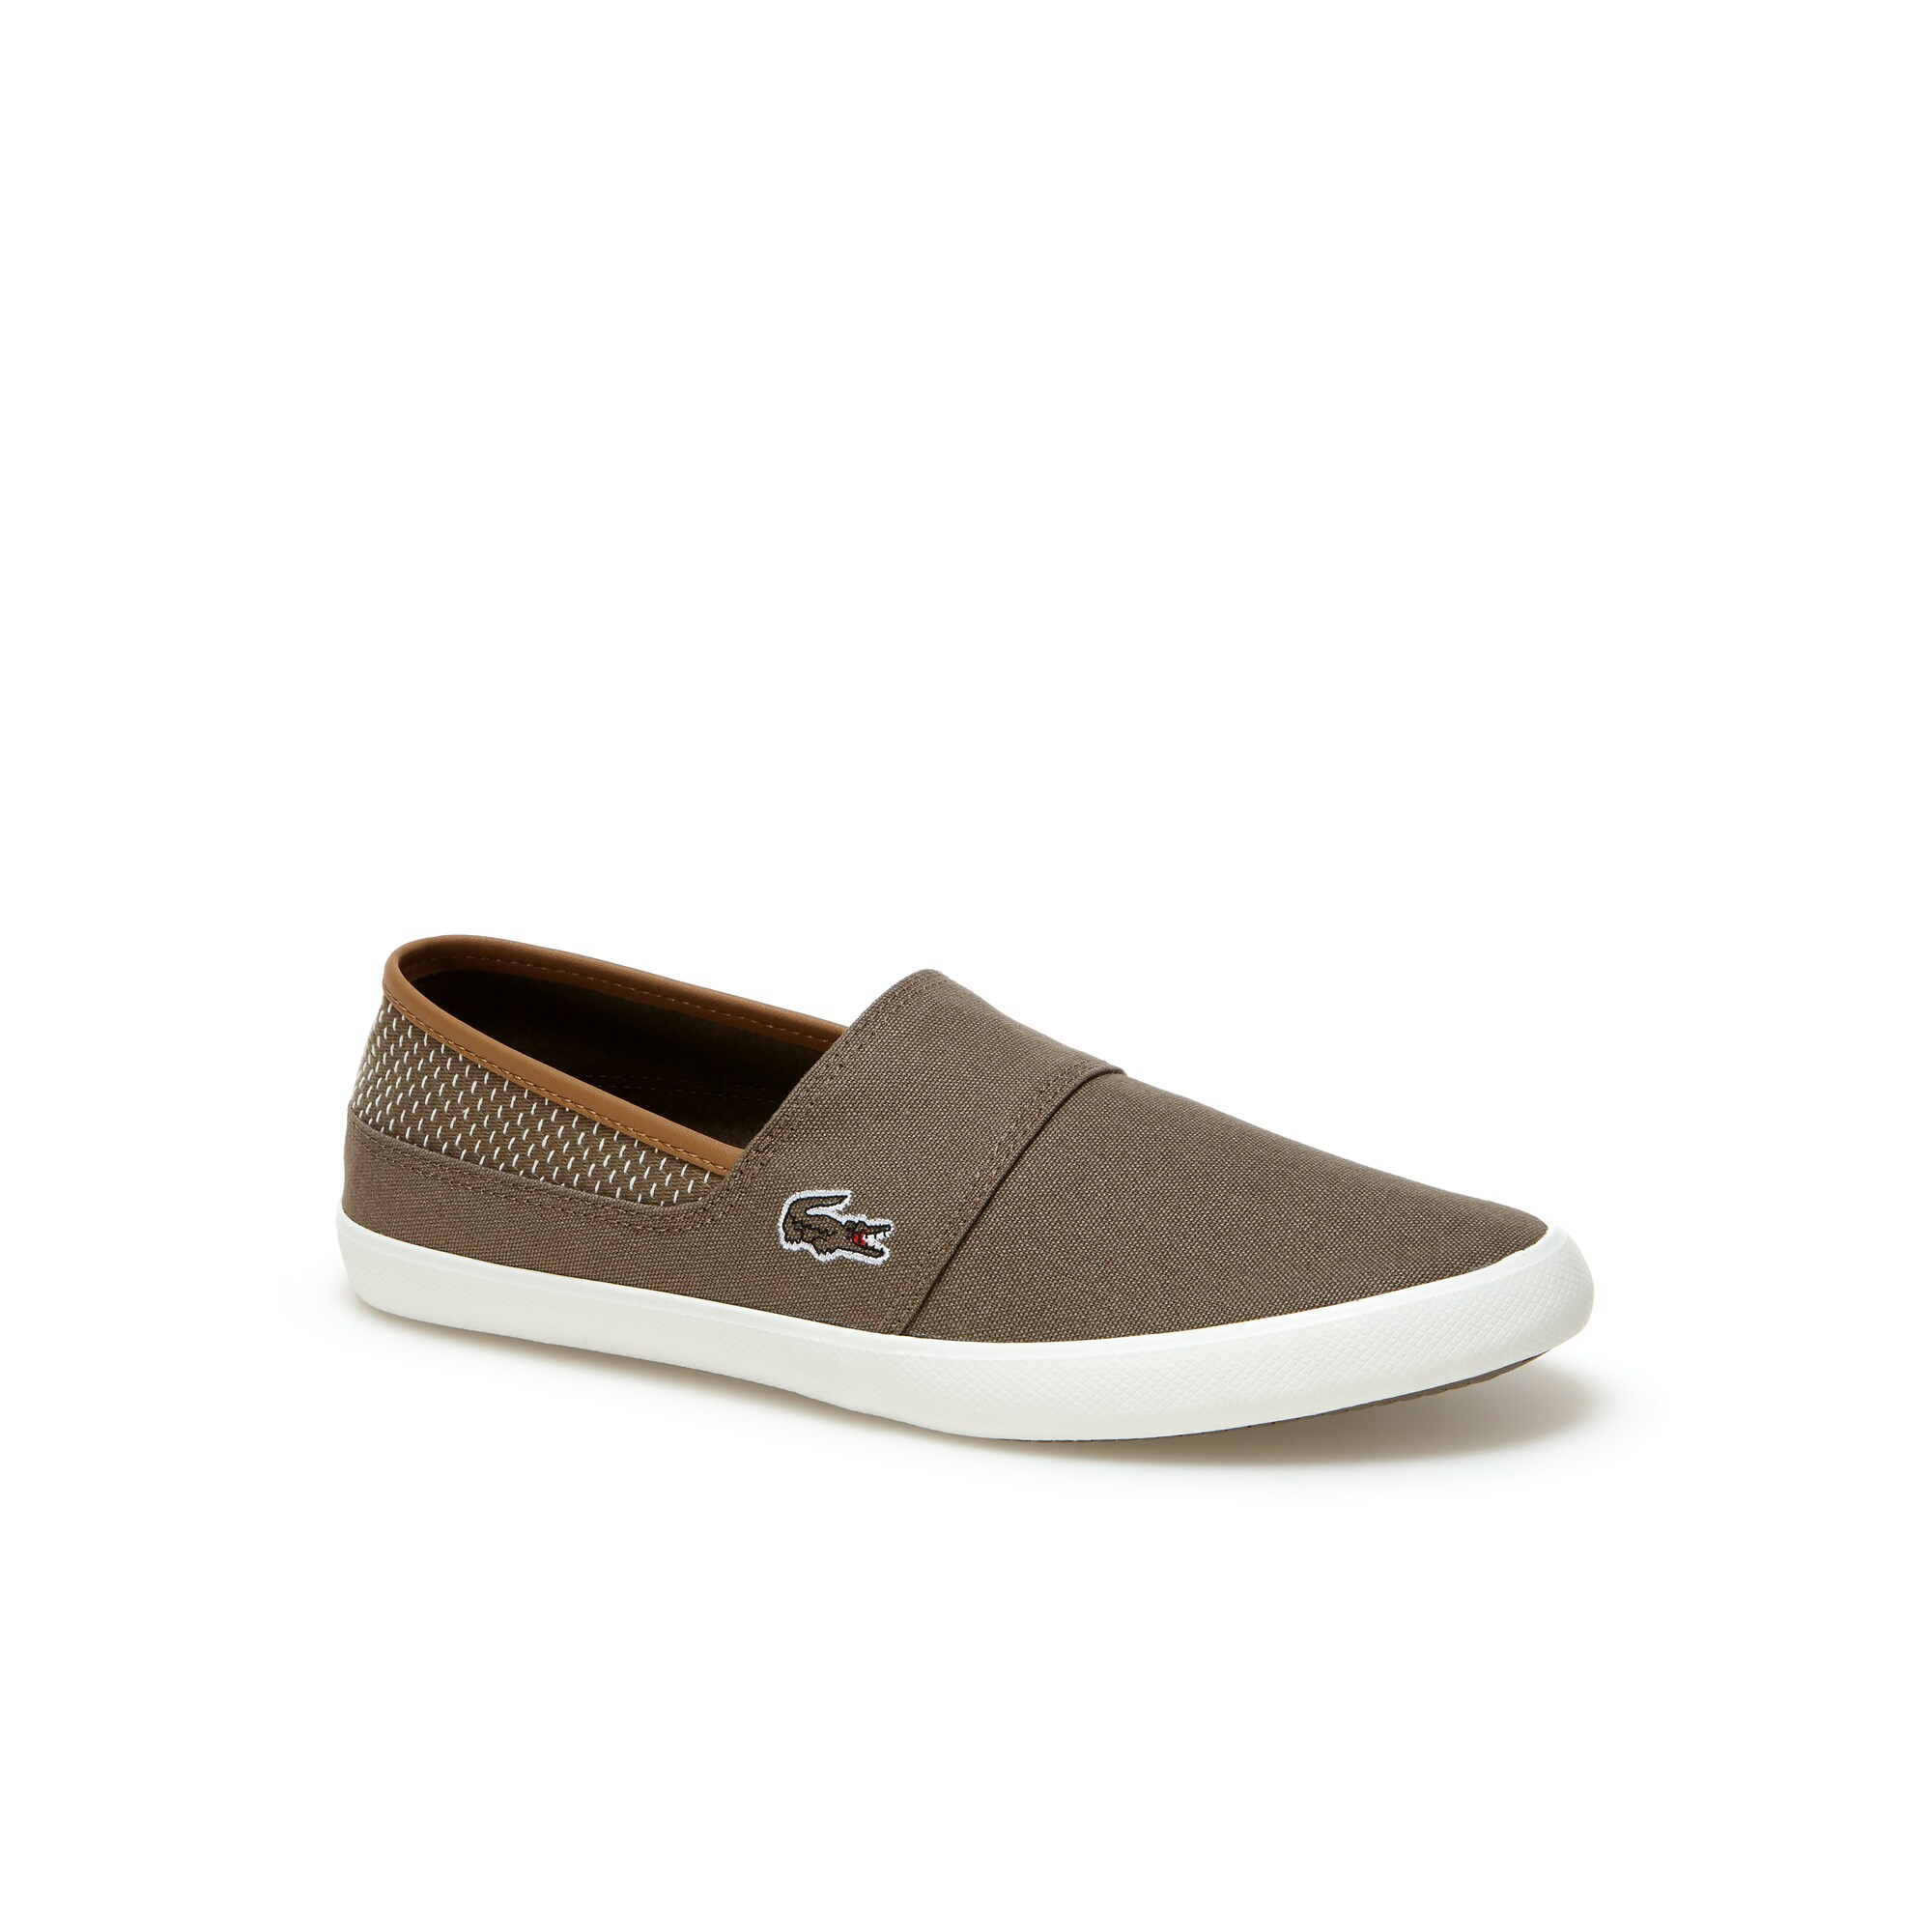 Men's Marice Canvas Slip-ons